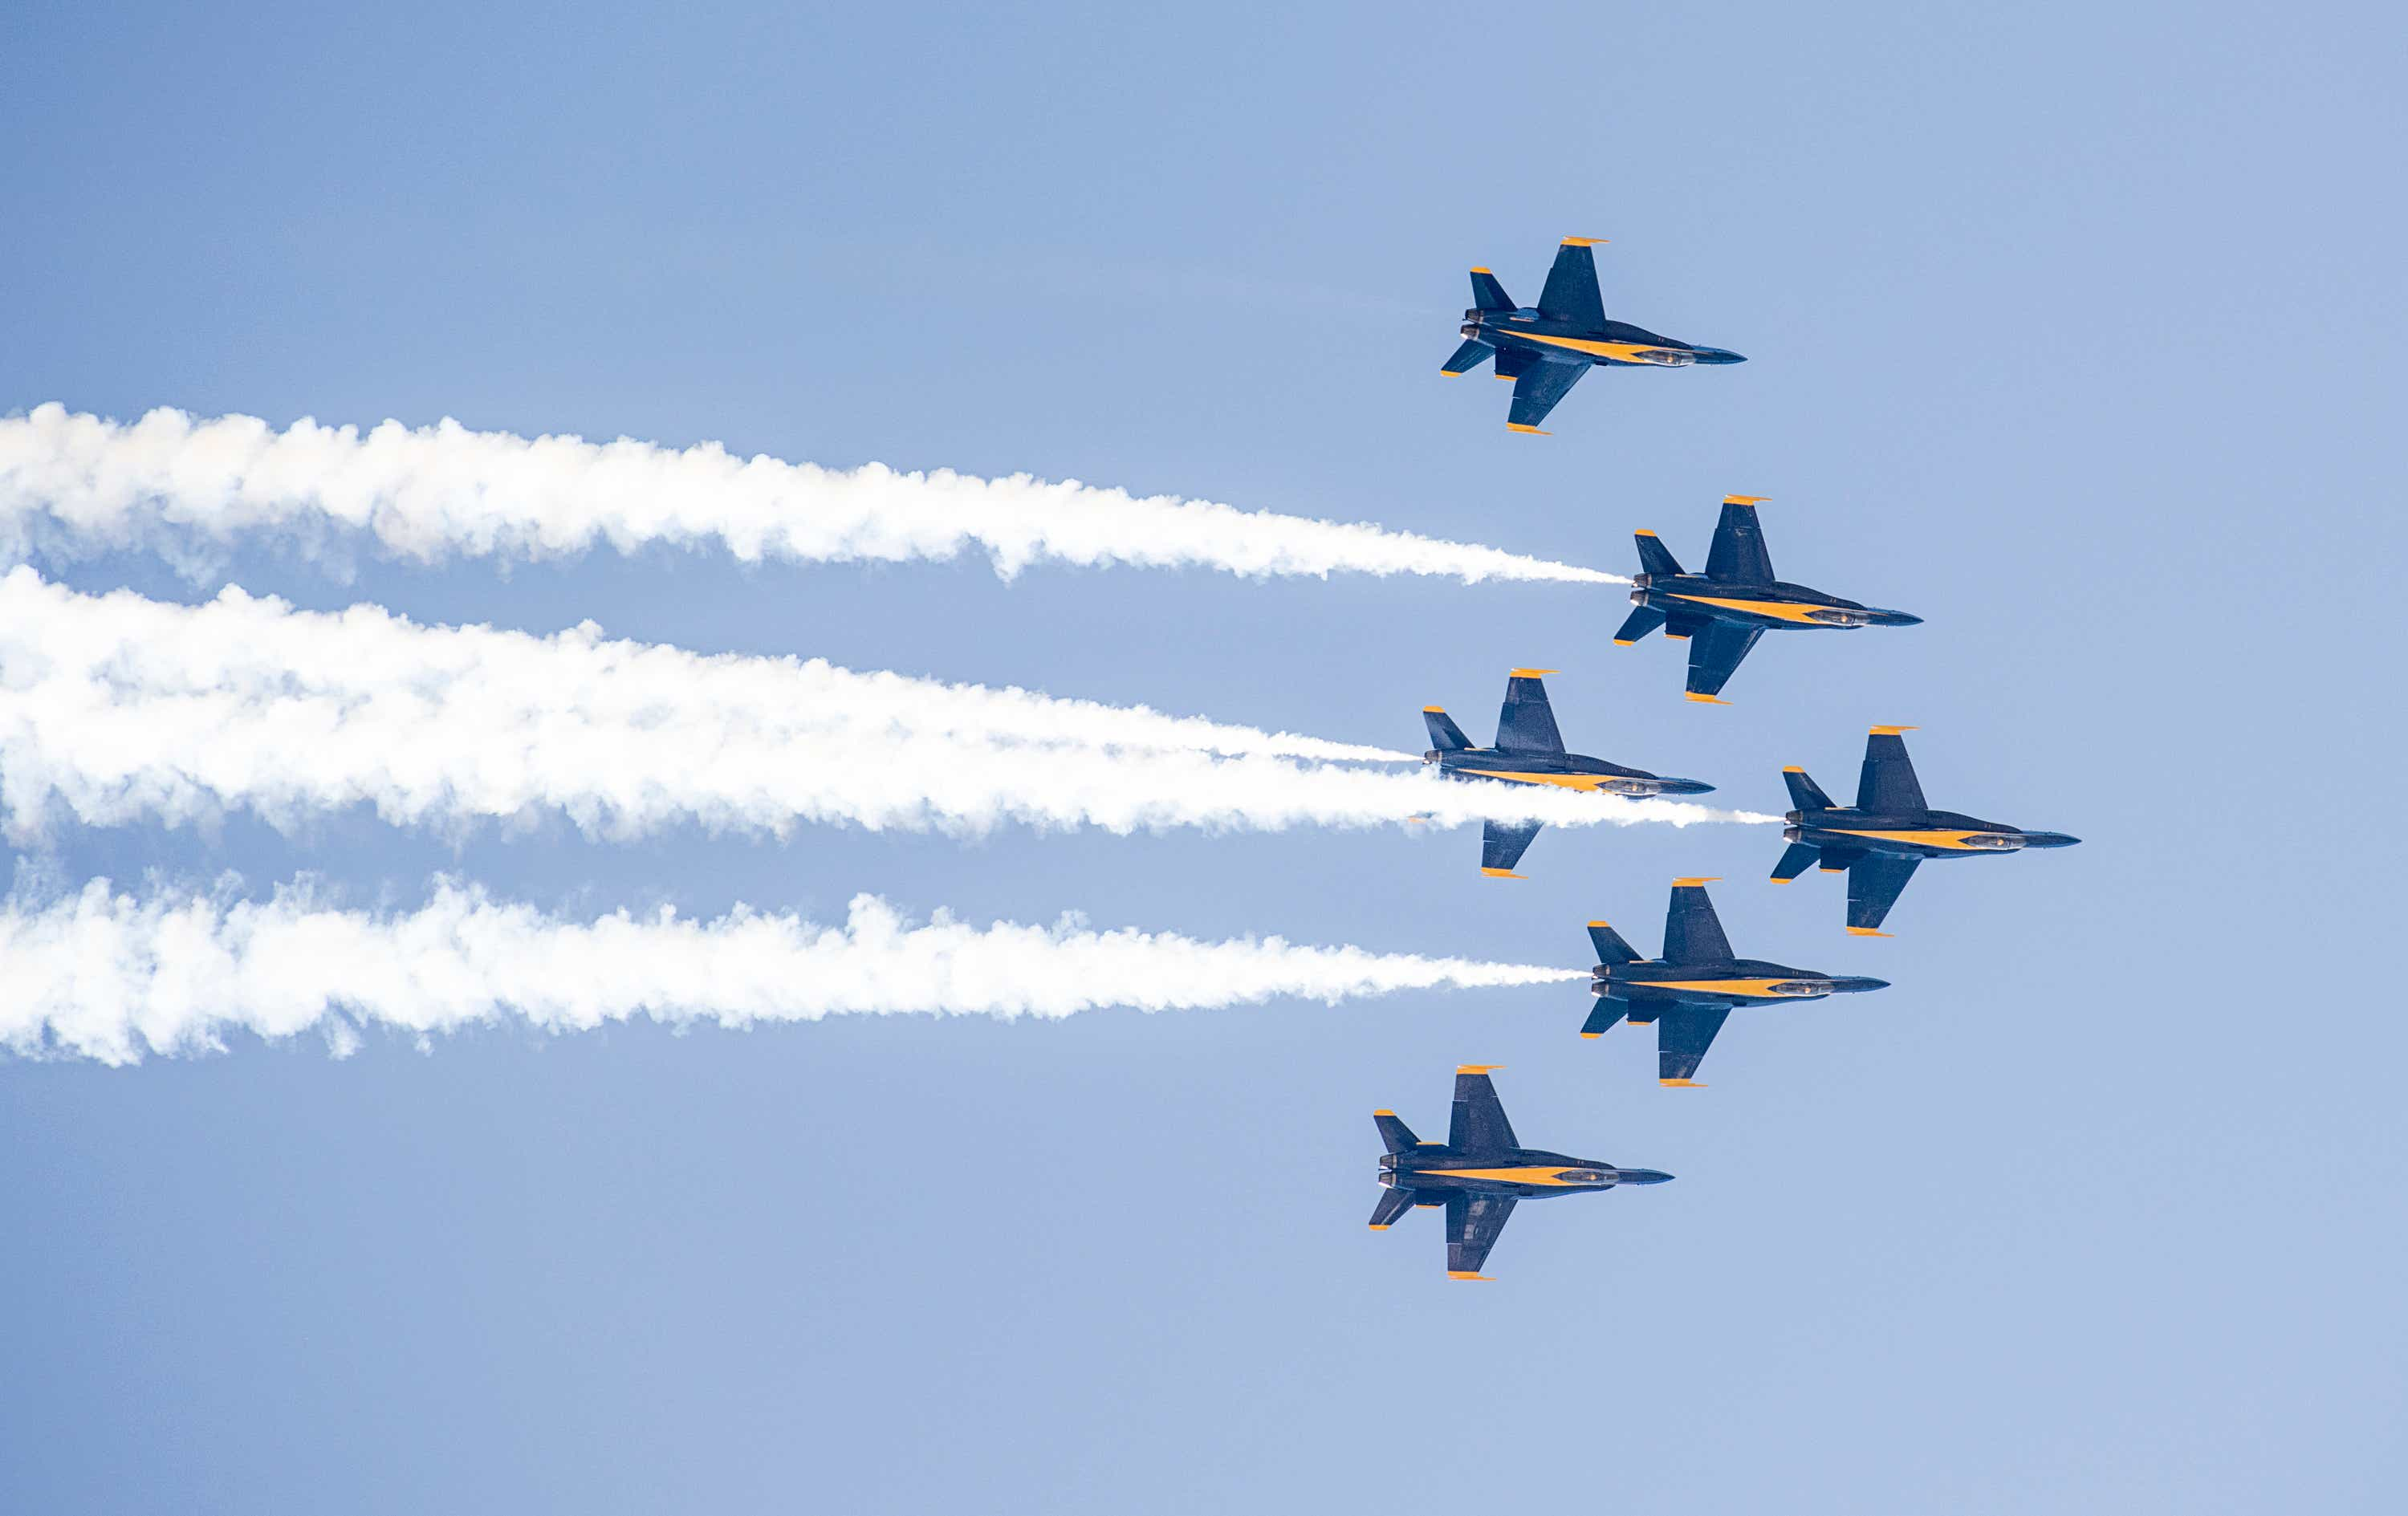 711e5d4cc8c Blue Angels commanding officer for 2020 and 2021 seasons-brian kesselring